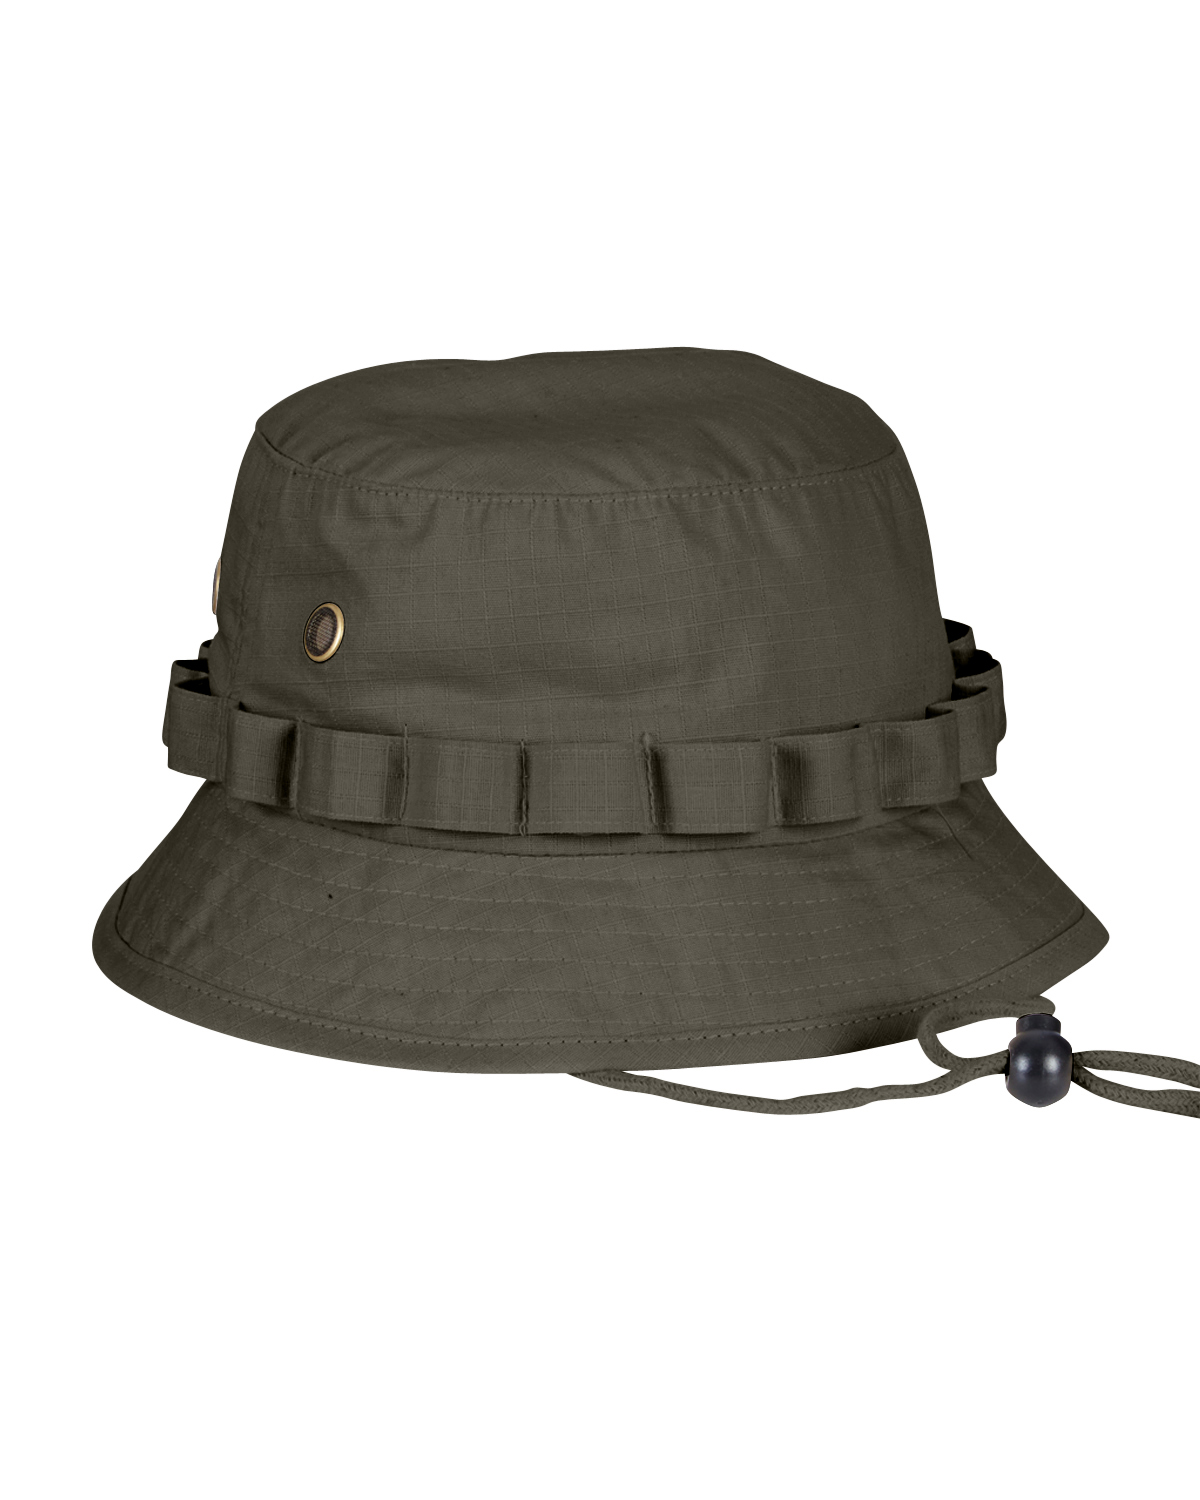 Big Accessories BA547 - Boonie Hat